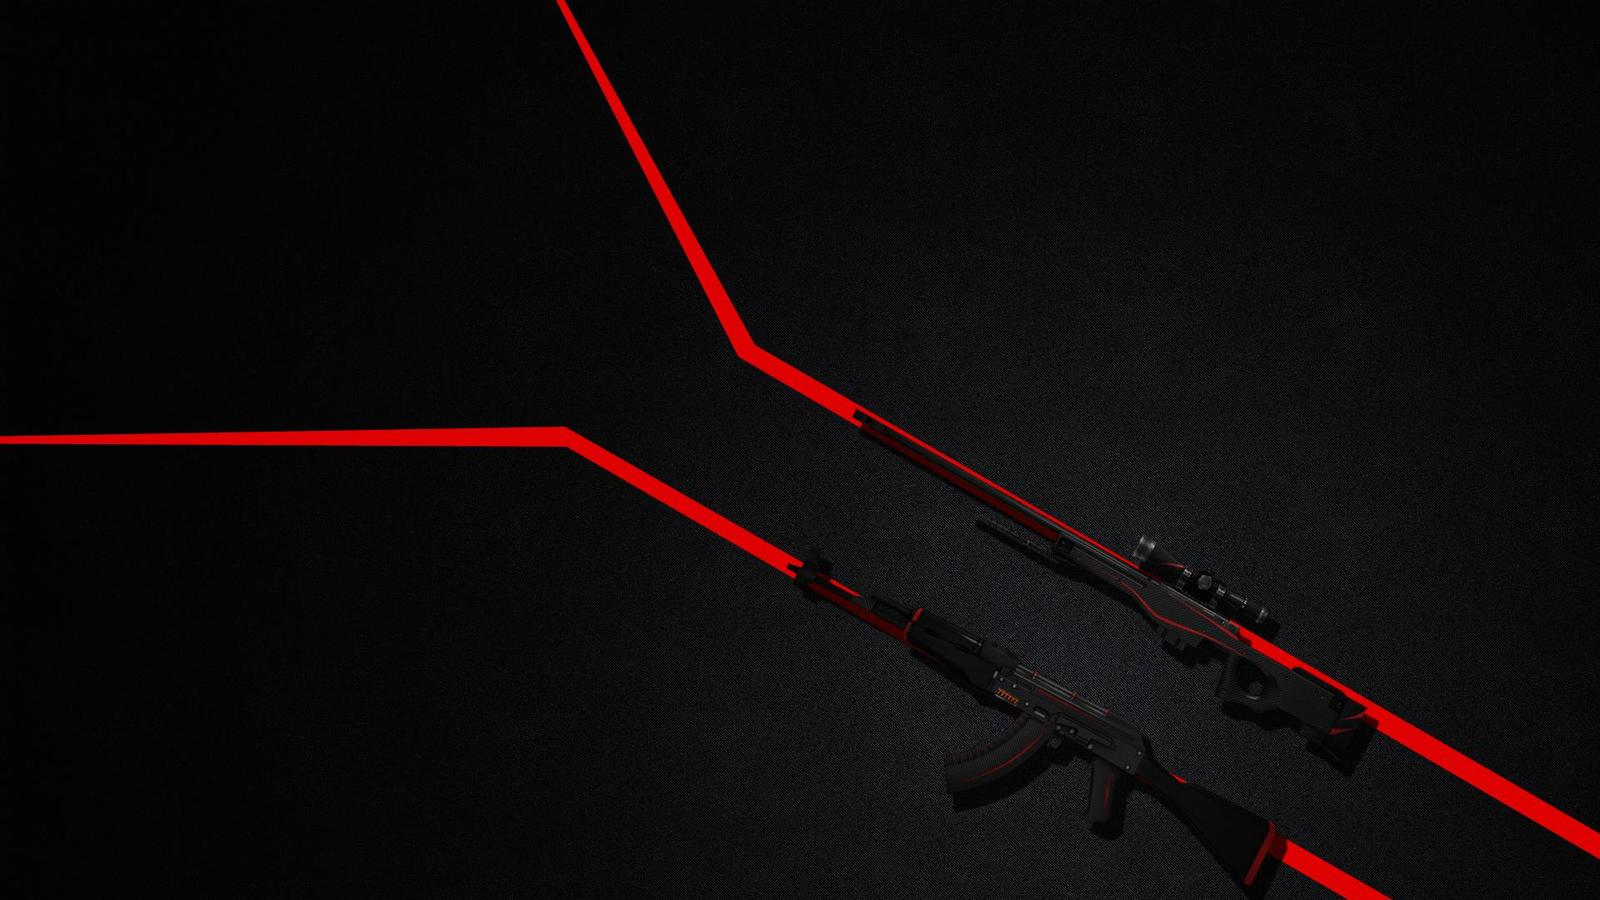 Ak 47 and awp redline csgo wallpaper 1920x1080 1600x900